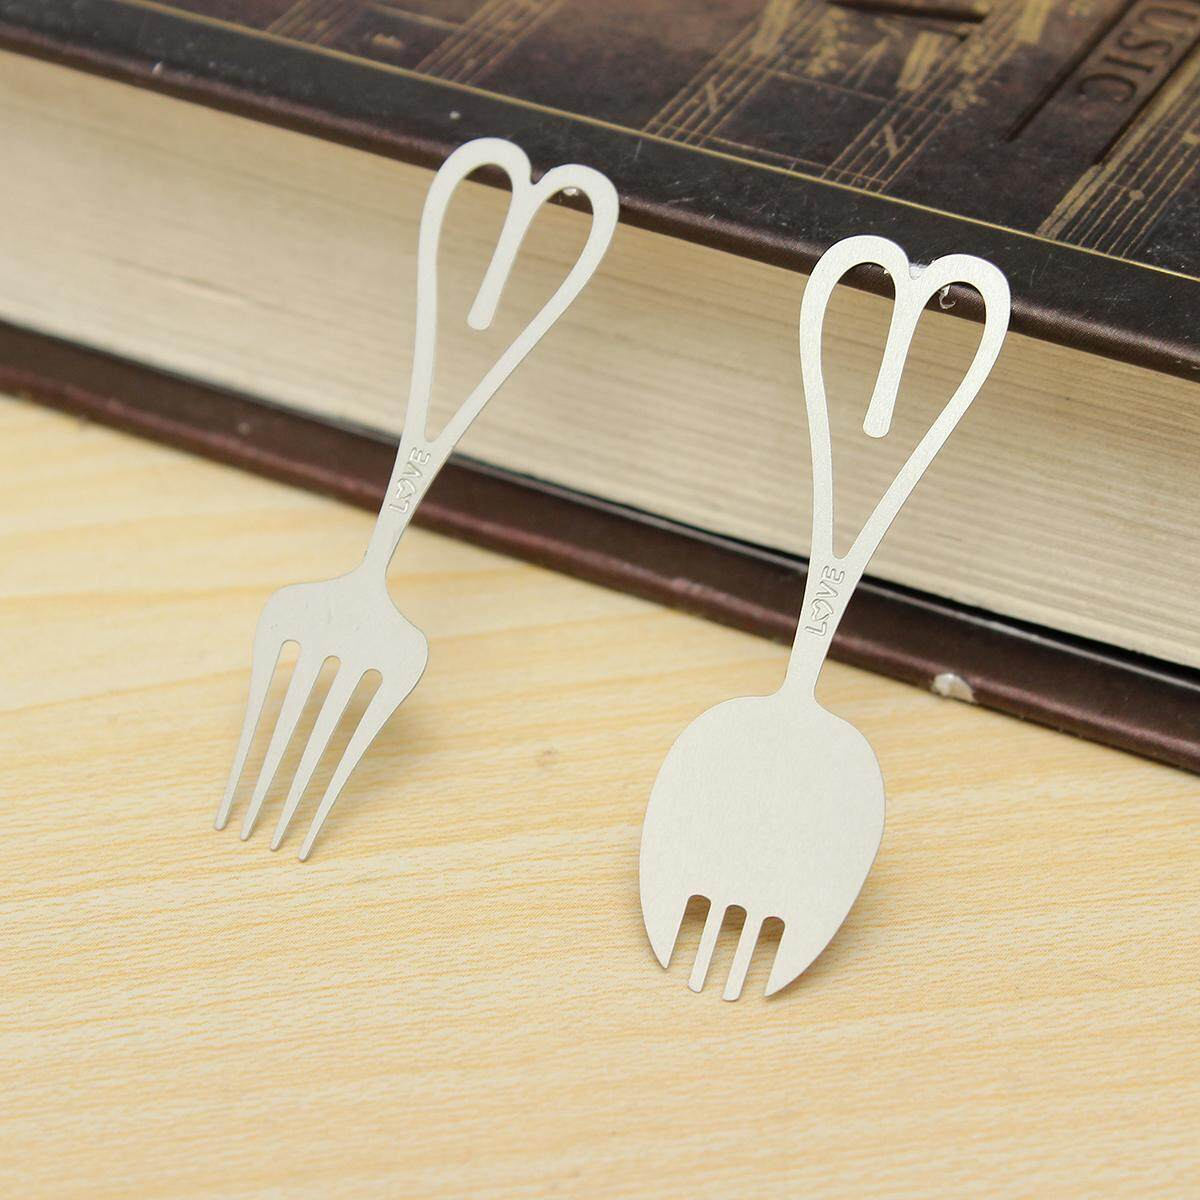 Metal Bookmark Note Memo Paper Ducument Marker Clip Stationery Gift By Audew.